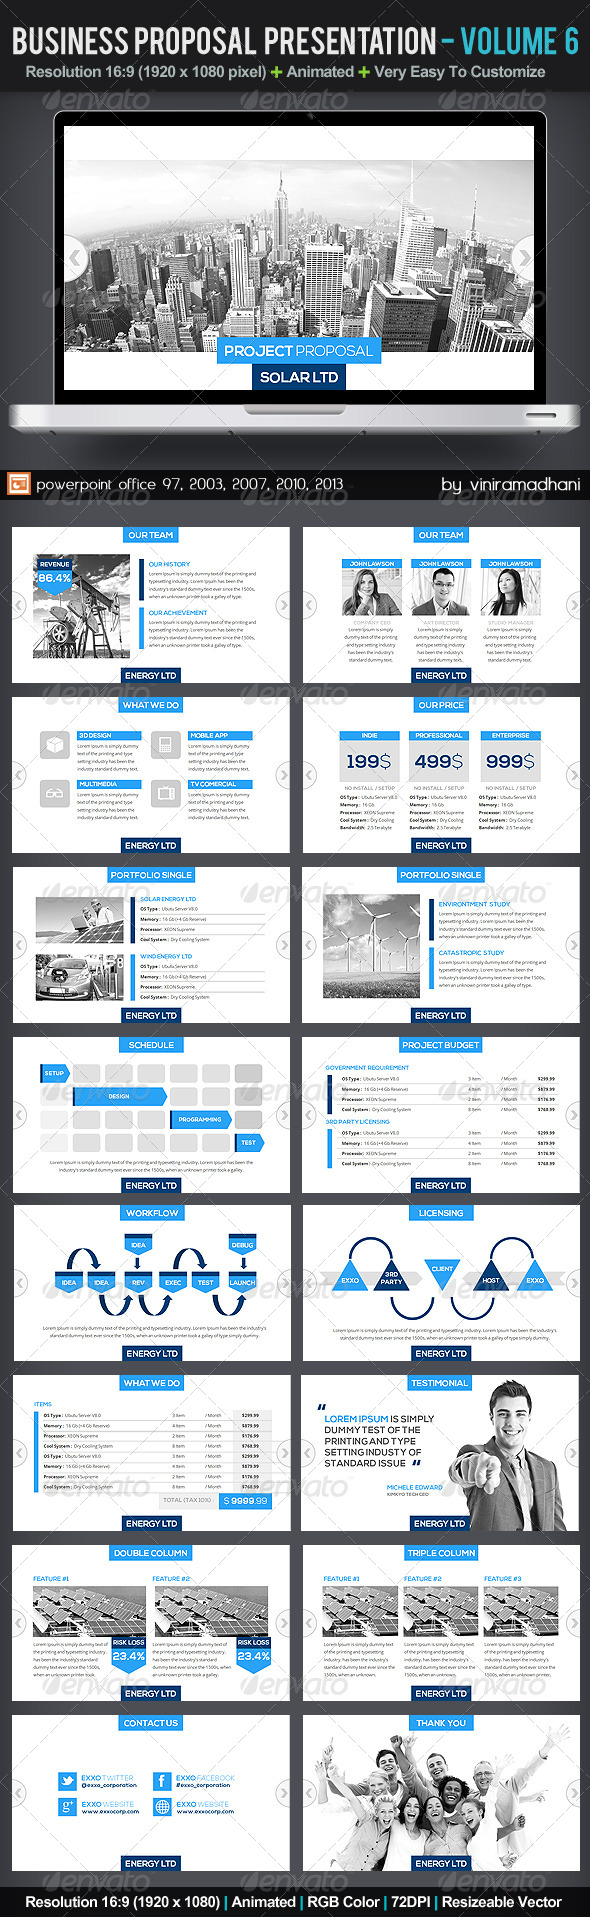 GraphicRiver Business Proposal Presentation Volume 6 5908704